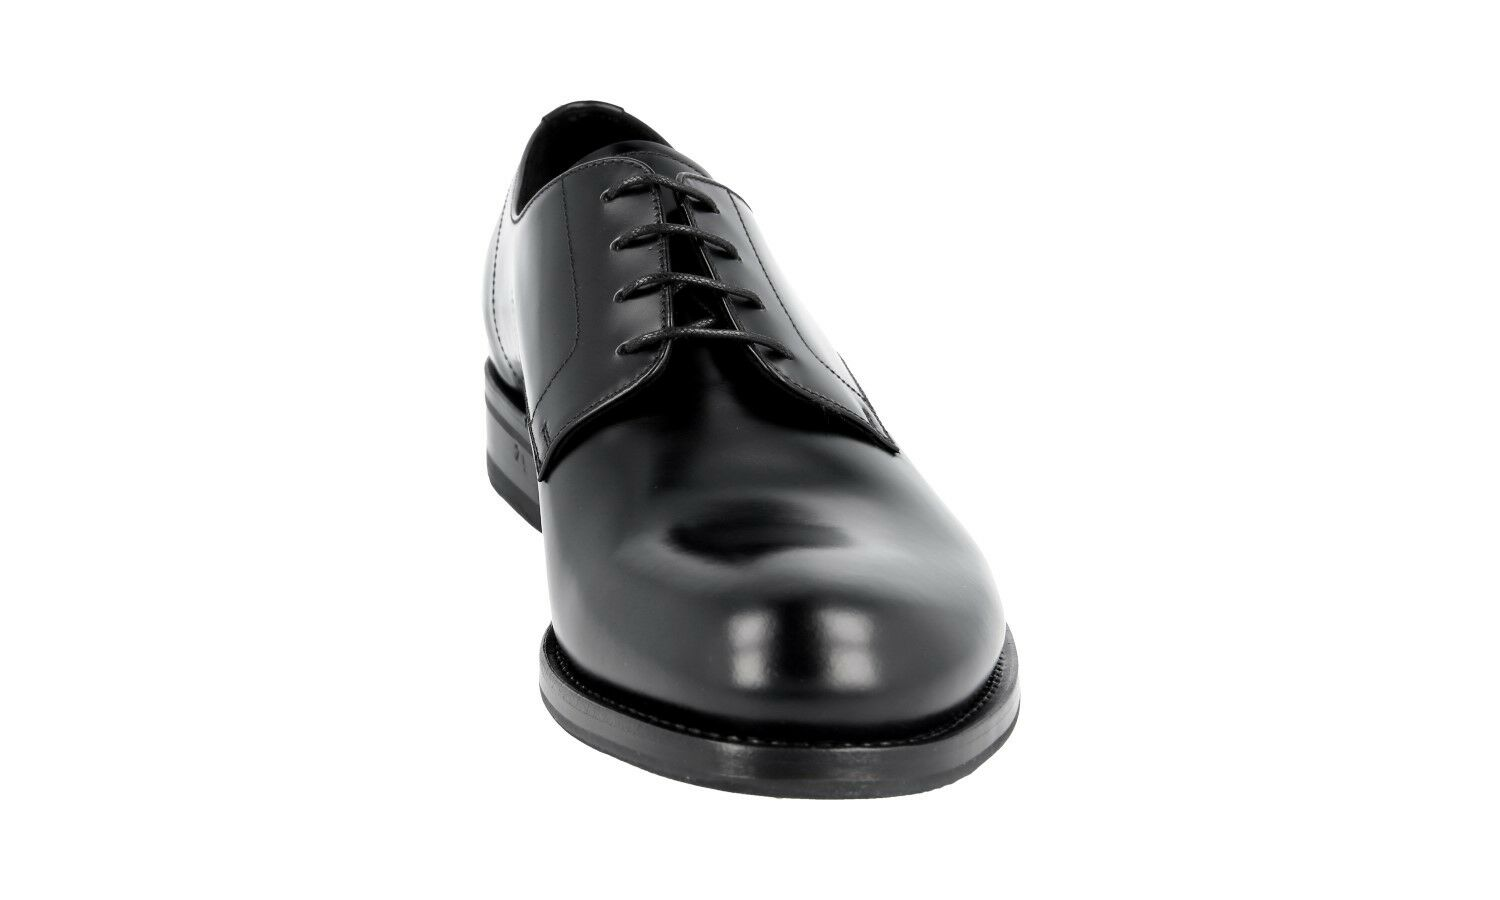 Luxe Prada Derby Plain Toe Business NEW Chaussures 2eb116 NOIR NEUF NEW Business 8 42 42,5 9f7768